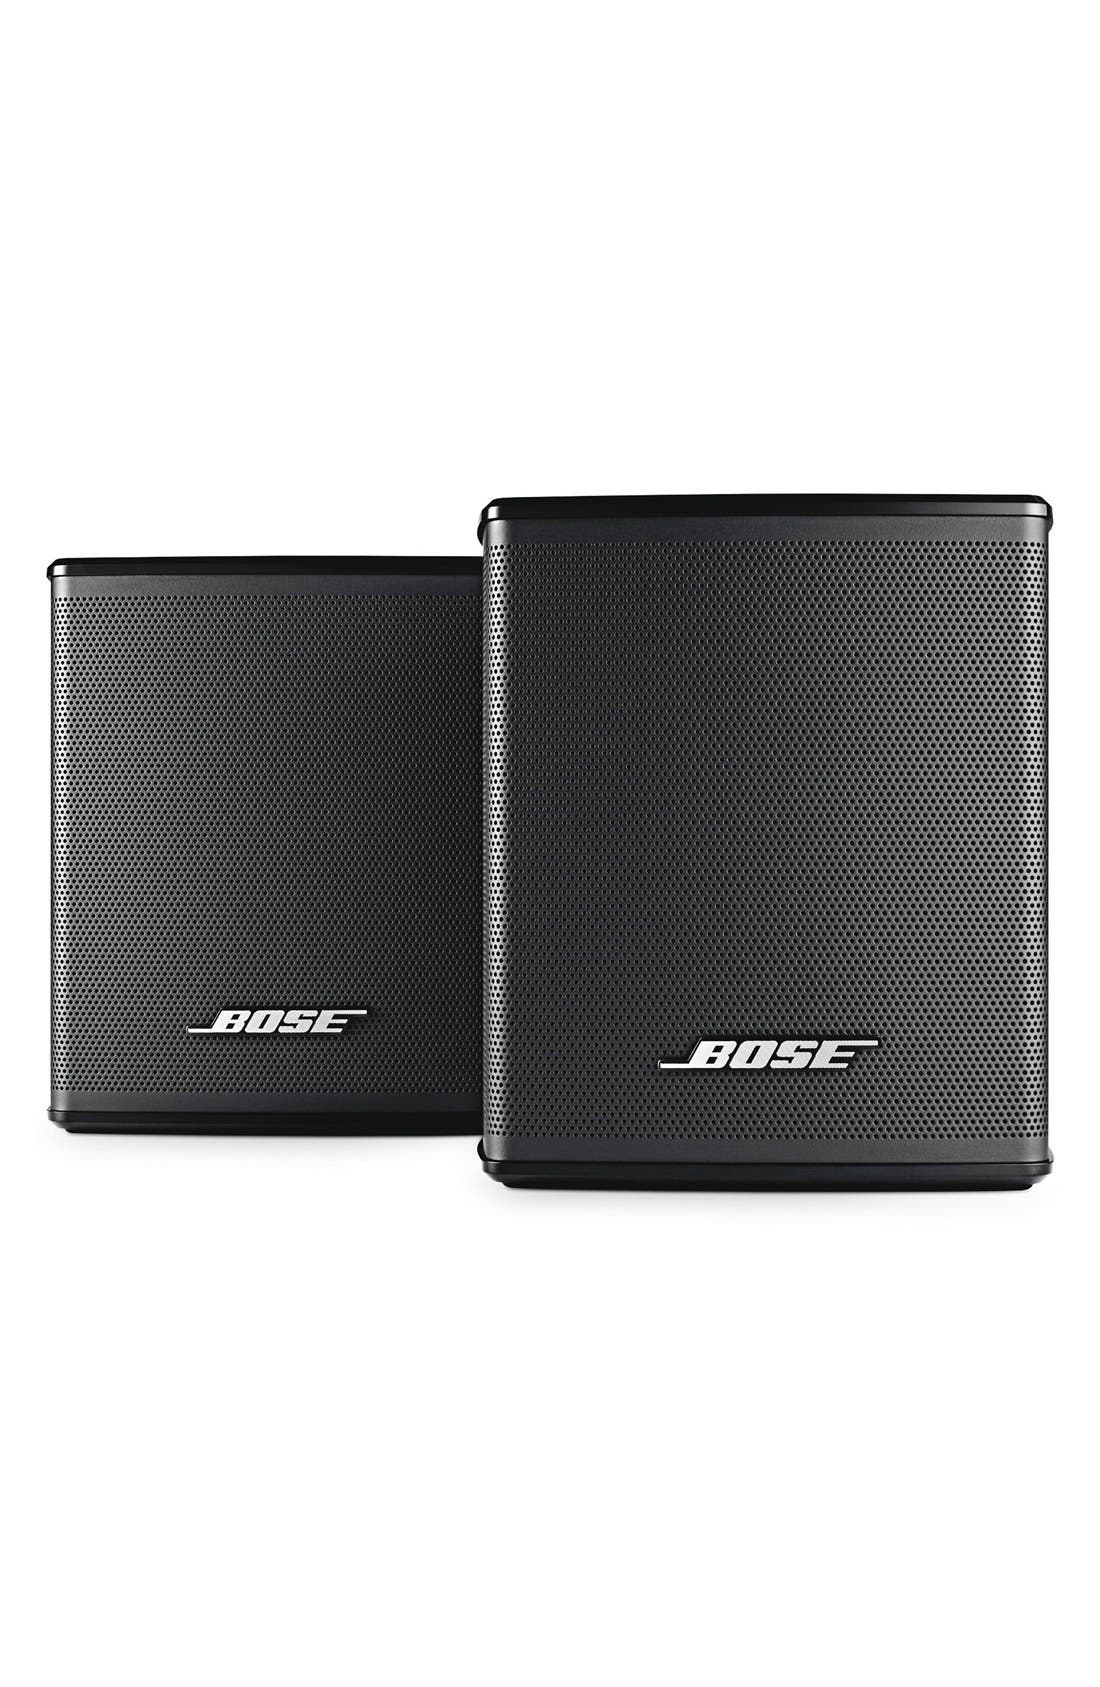 BOSE<SUP>®</SUP> SoundTouch<sup>®</sup> 300 Set of 2 Surround Sound Speakers